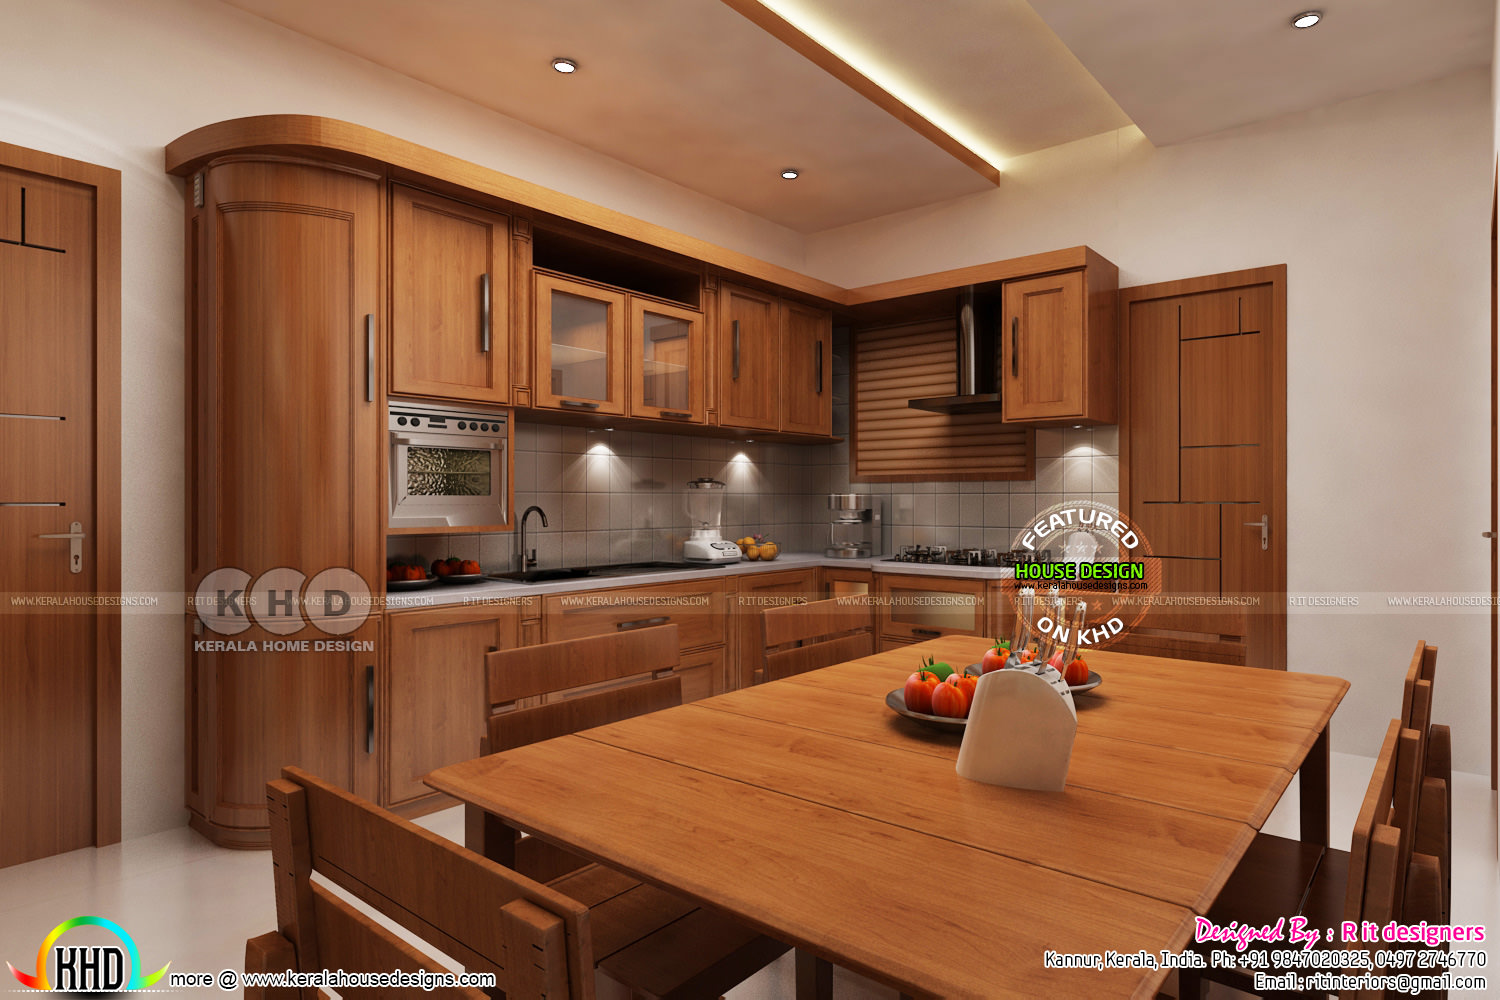 Kitchen Interior Design: Dining, Kitchen Interior Designs